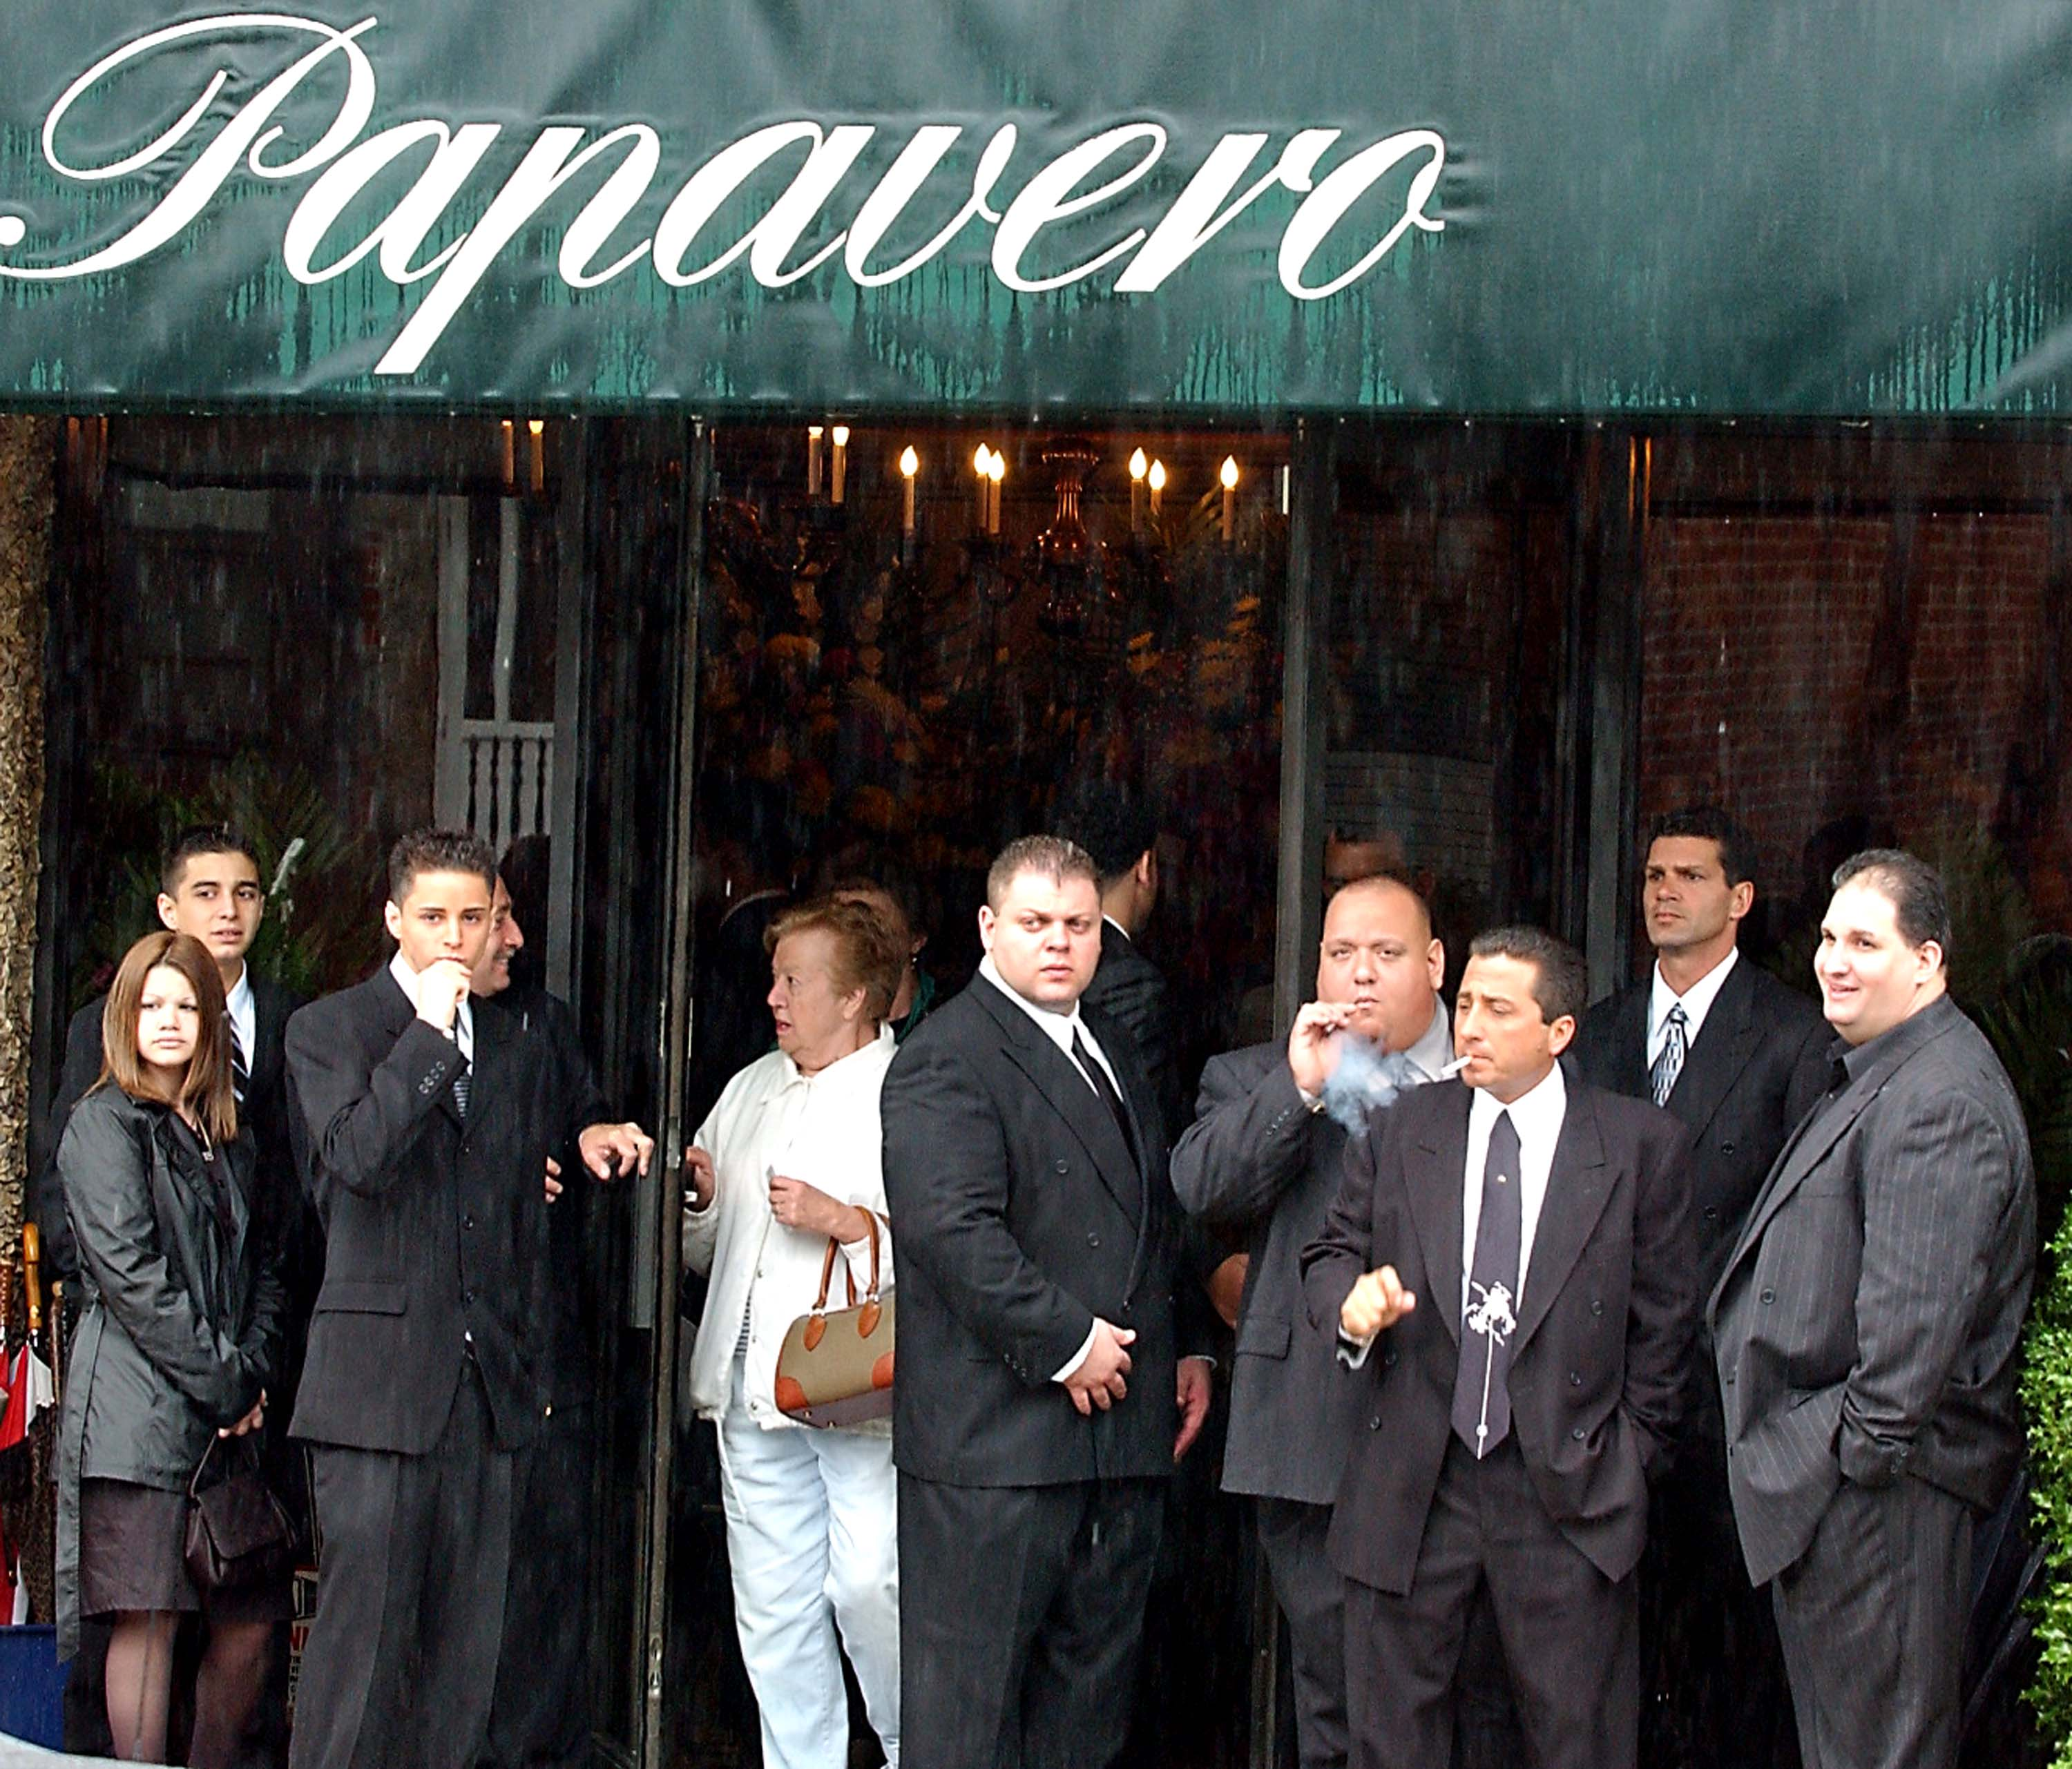 Friends and family stand in front of the Papavero funeral home to attend the wake for mobster John Gotti, June 14, 2002 in the Queens borough of New York City. Gotti was interred in a crypt the following day at St John's Cemetery in Middle Village, Queens.